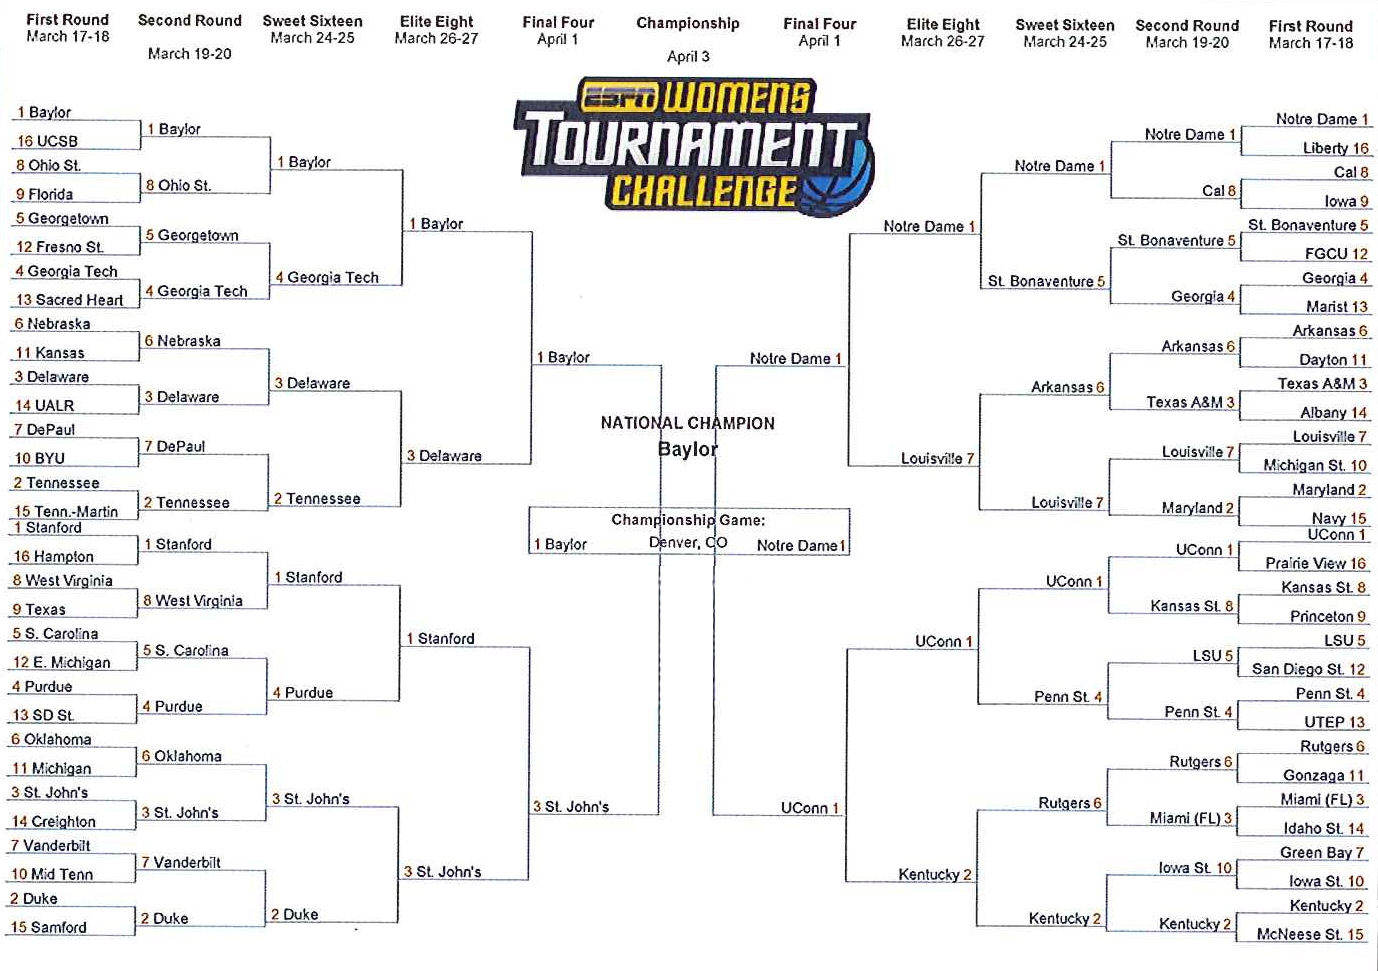 President Obama's 2012 NCAA Women's Bracket